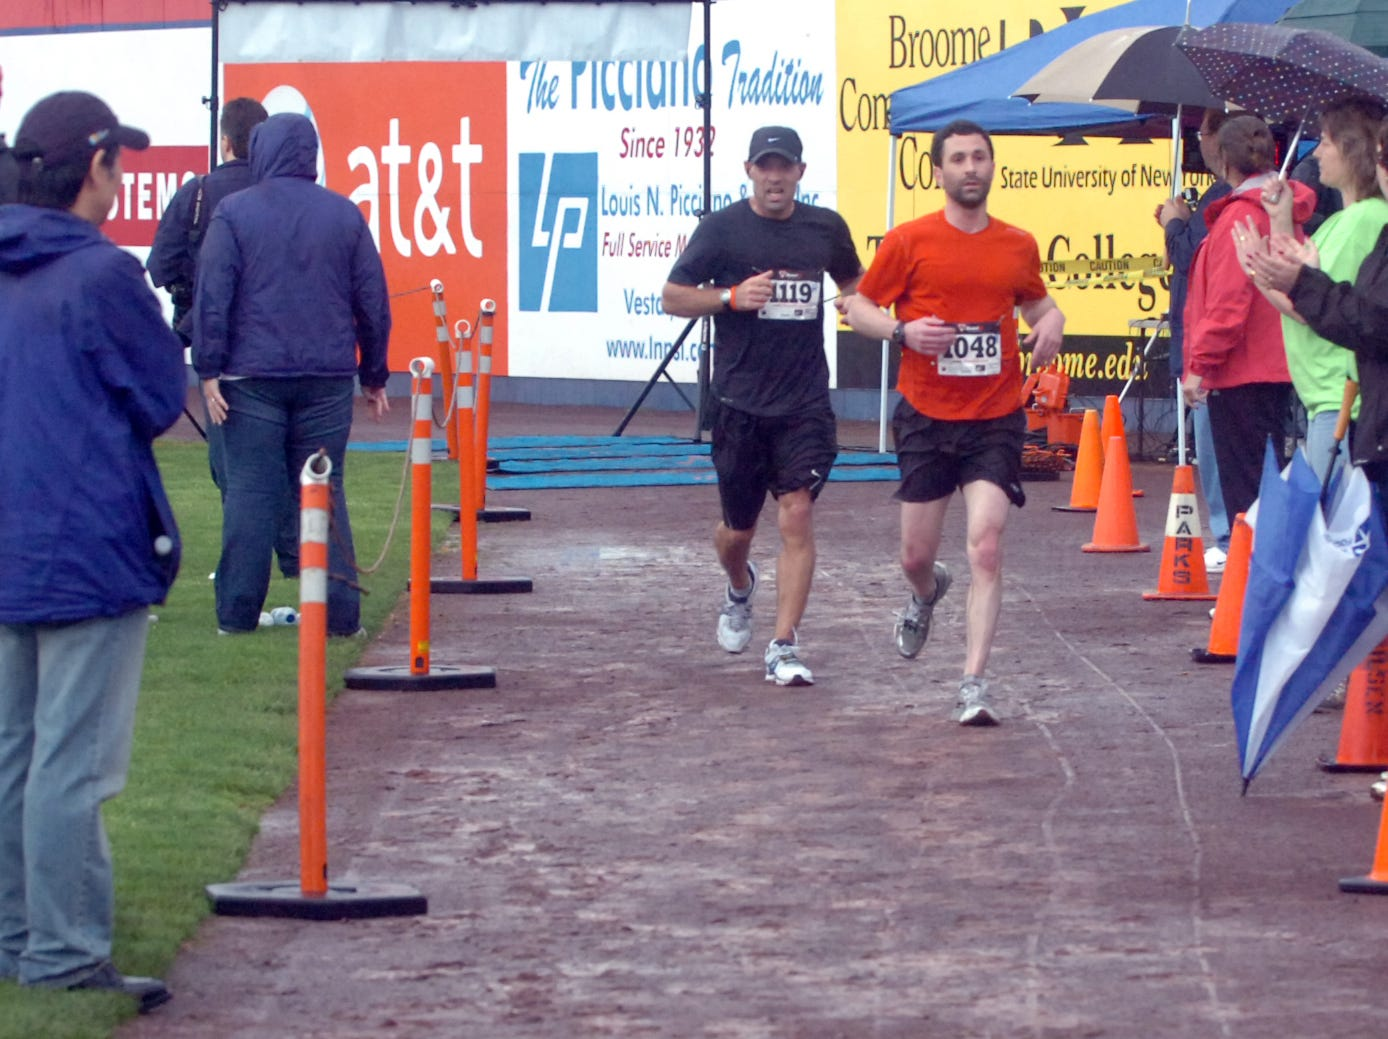 2011: Frank Prusick, left, and John Murray cross the finish line of the Greater Binghamton Bridge Run Half Marathon on Sunday. Roughly 890 runners competed in the inaugural race on a course through streets and over bridges in downtown Binghamton.